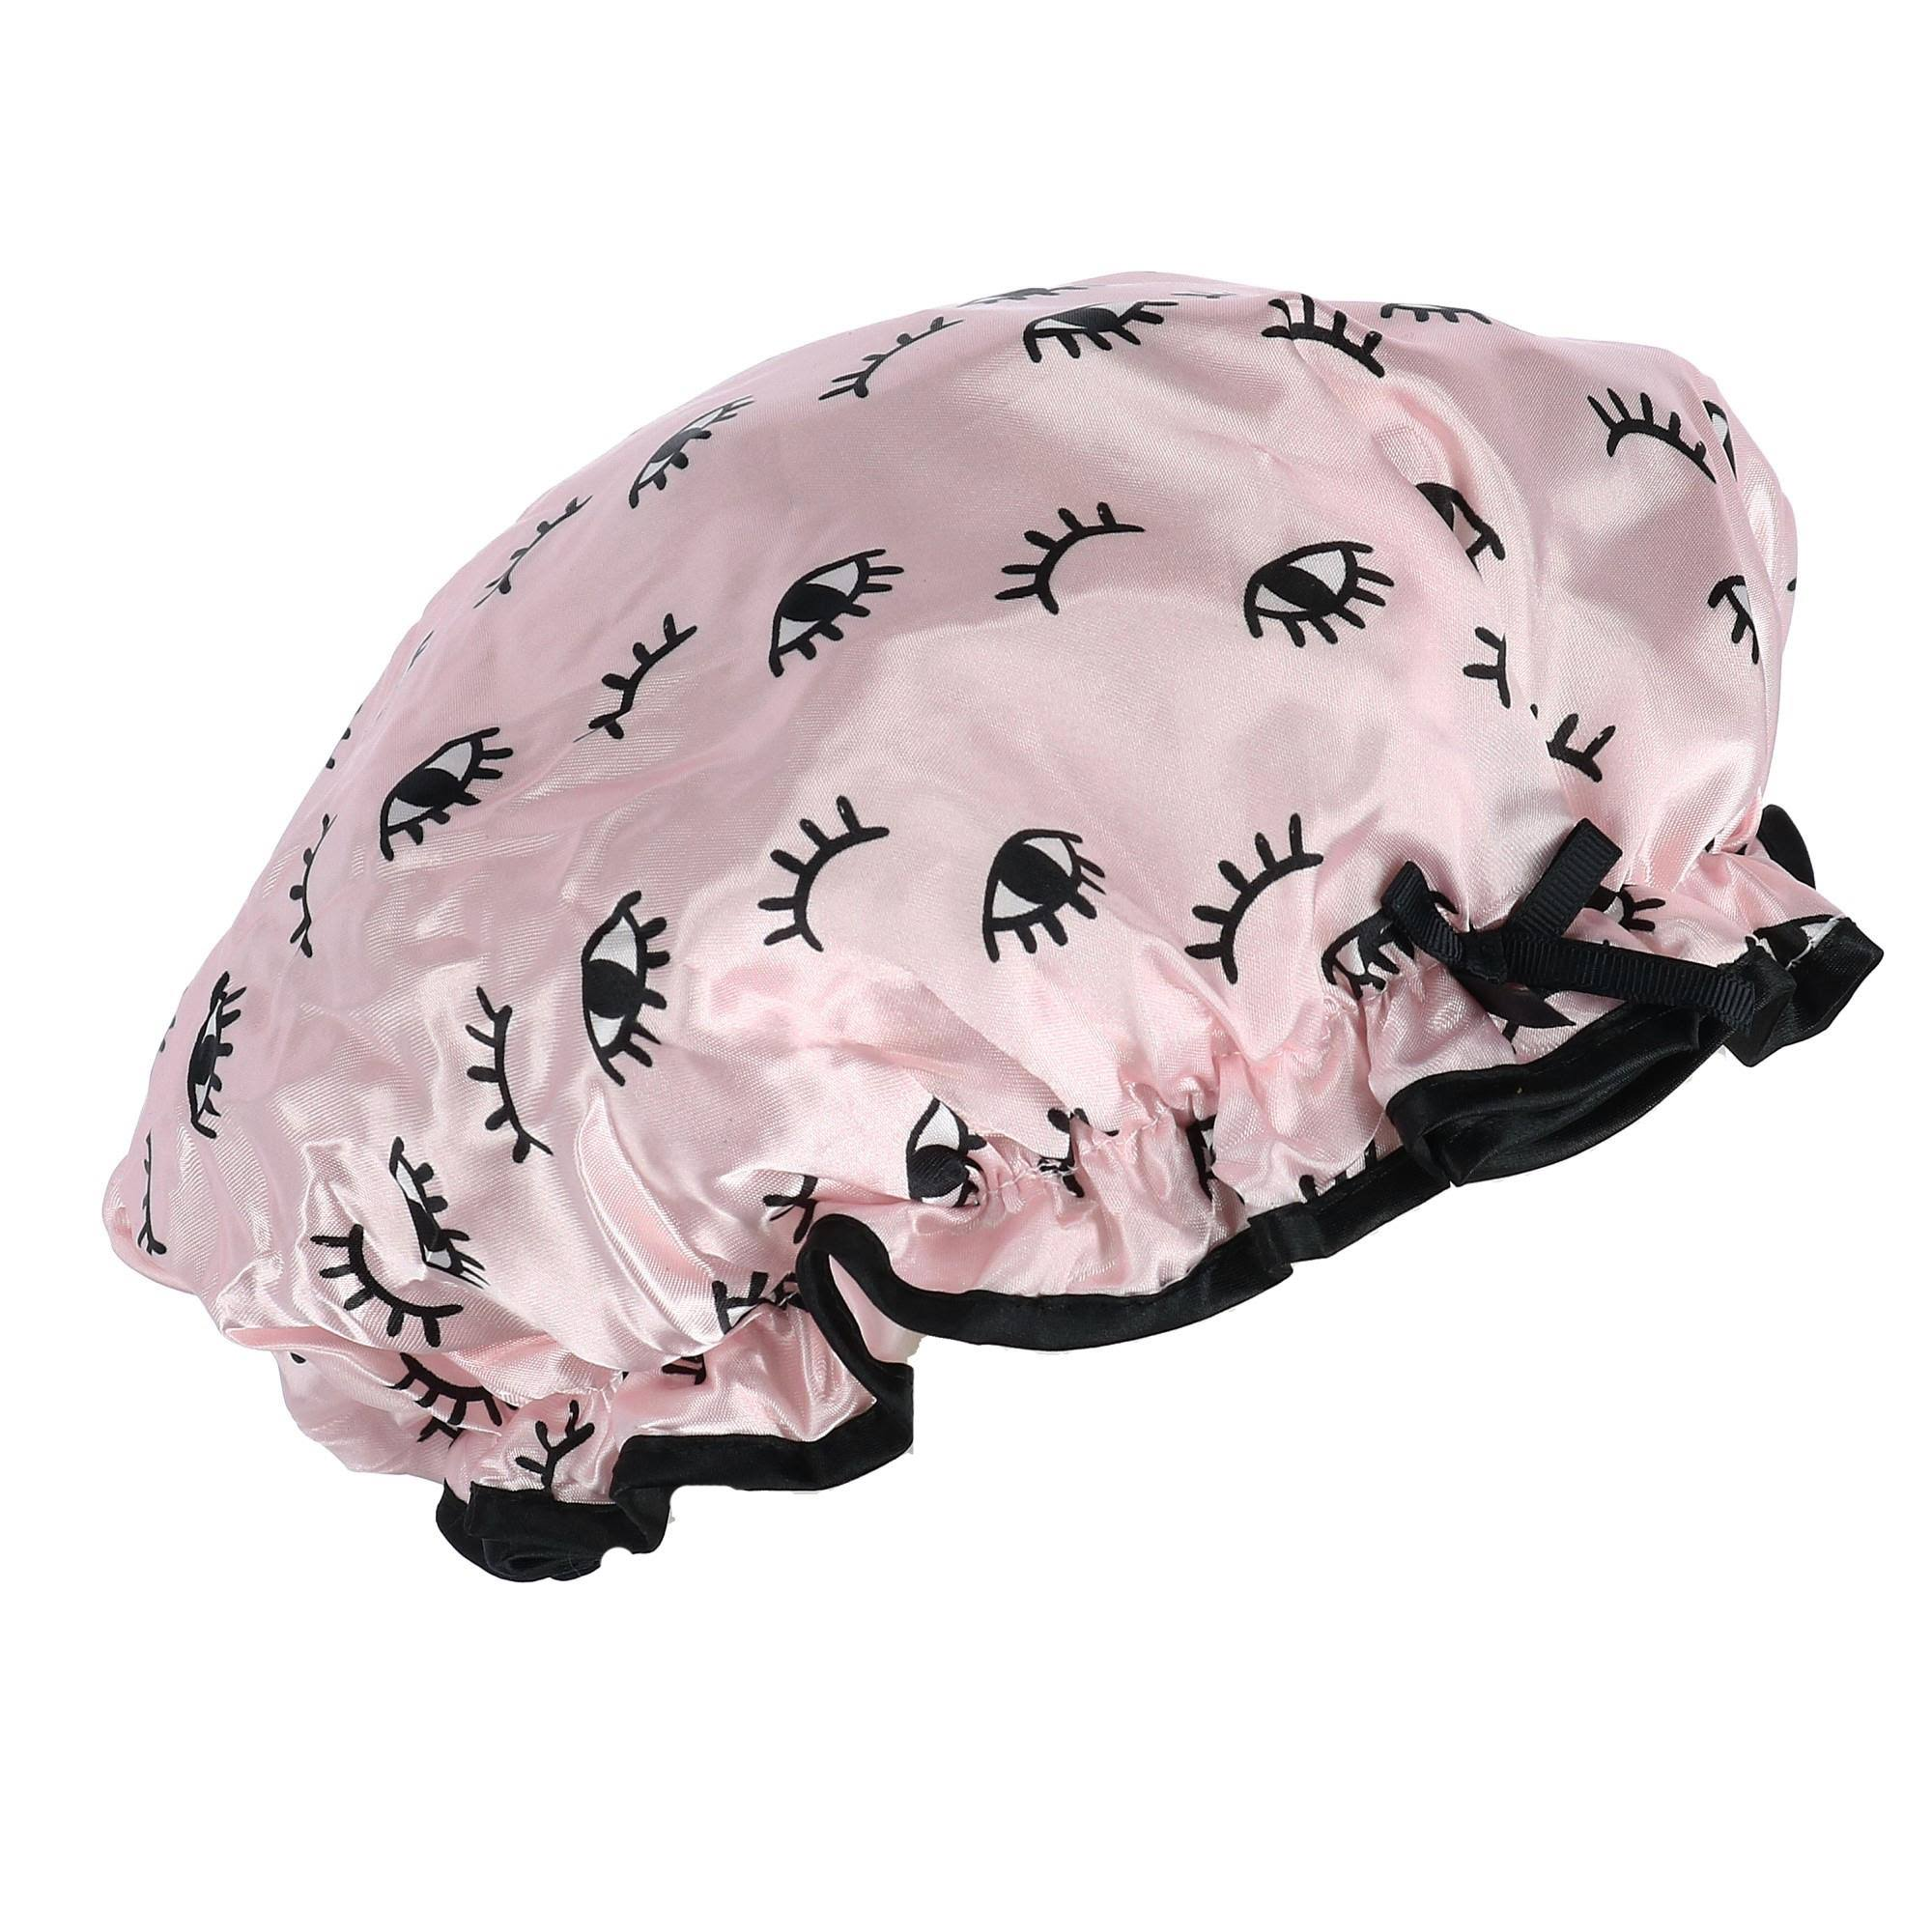 Lemon Lavender Women's Retro Style Shower Cap - Light Pink One Size